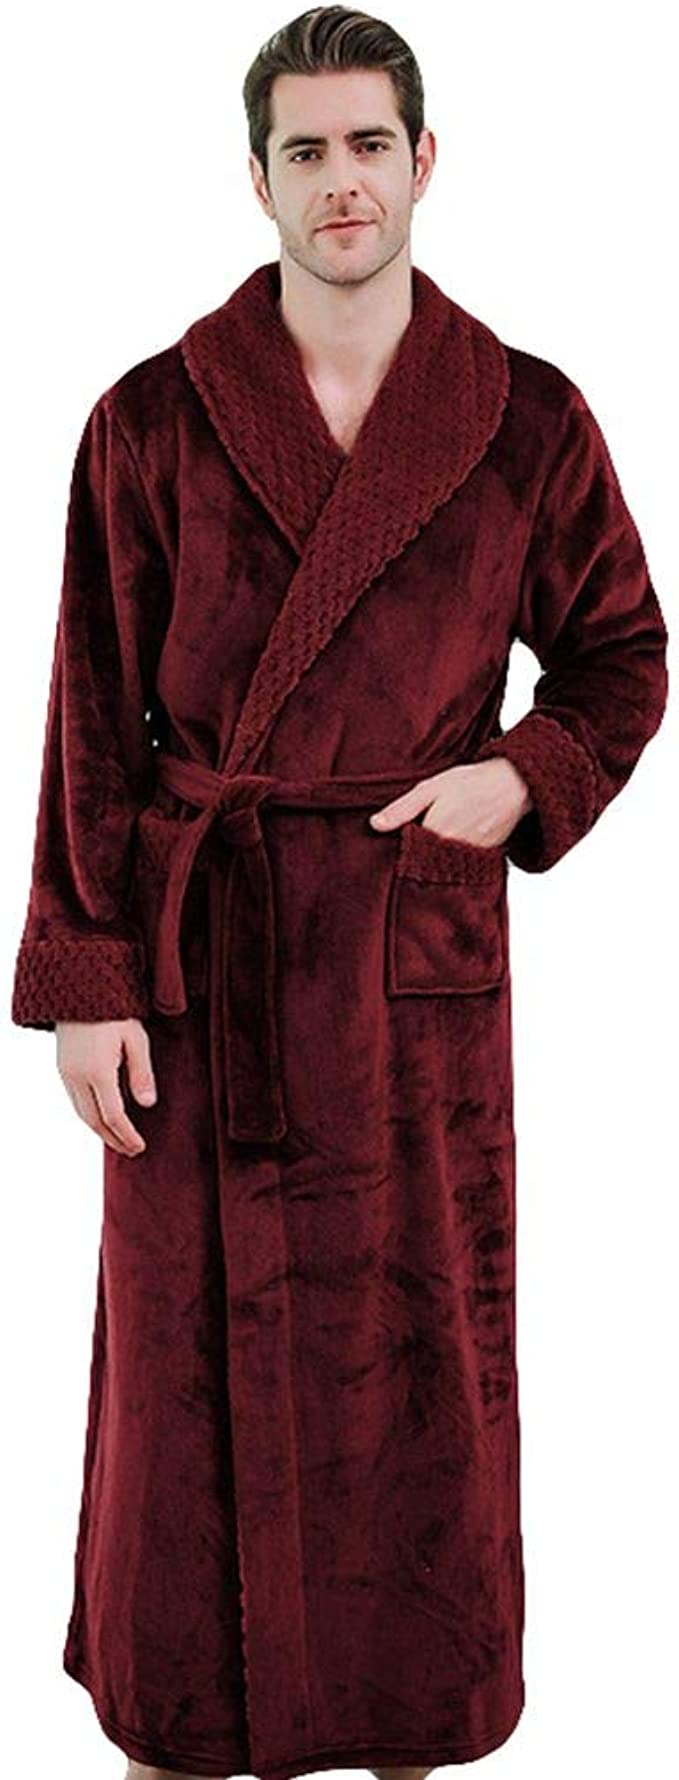 Liveinu Mens Flannel Sleepwear Bathrobe Long Sleeve Kimono Robe